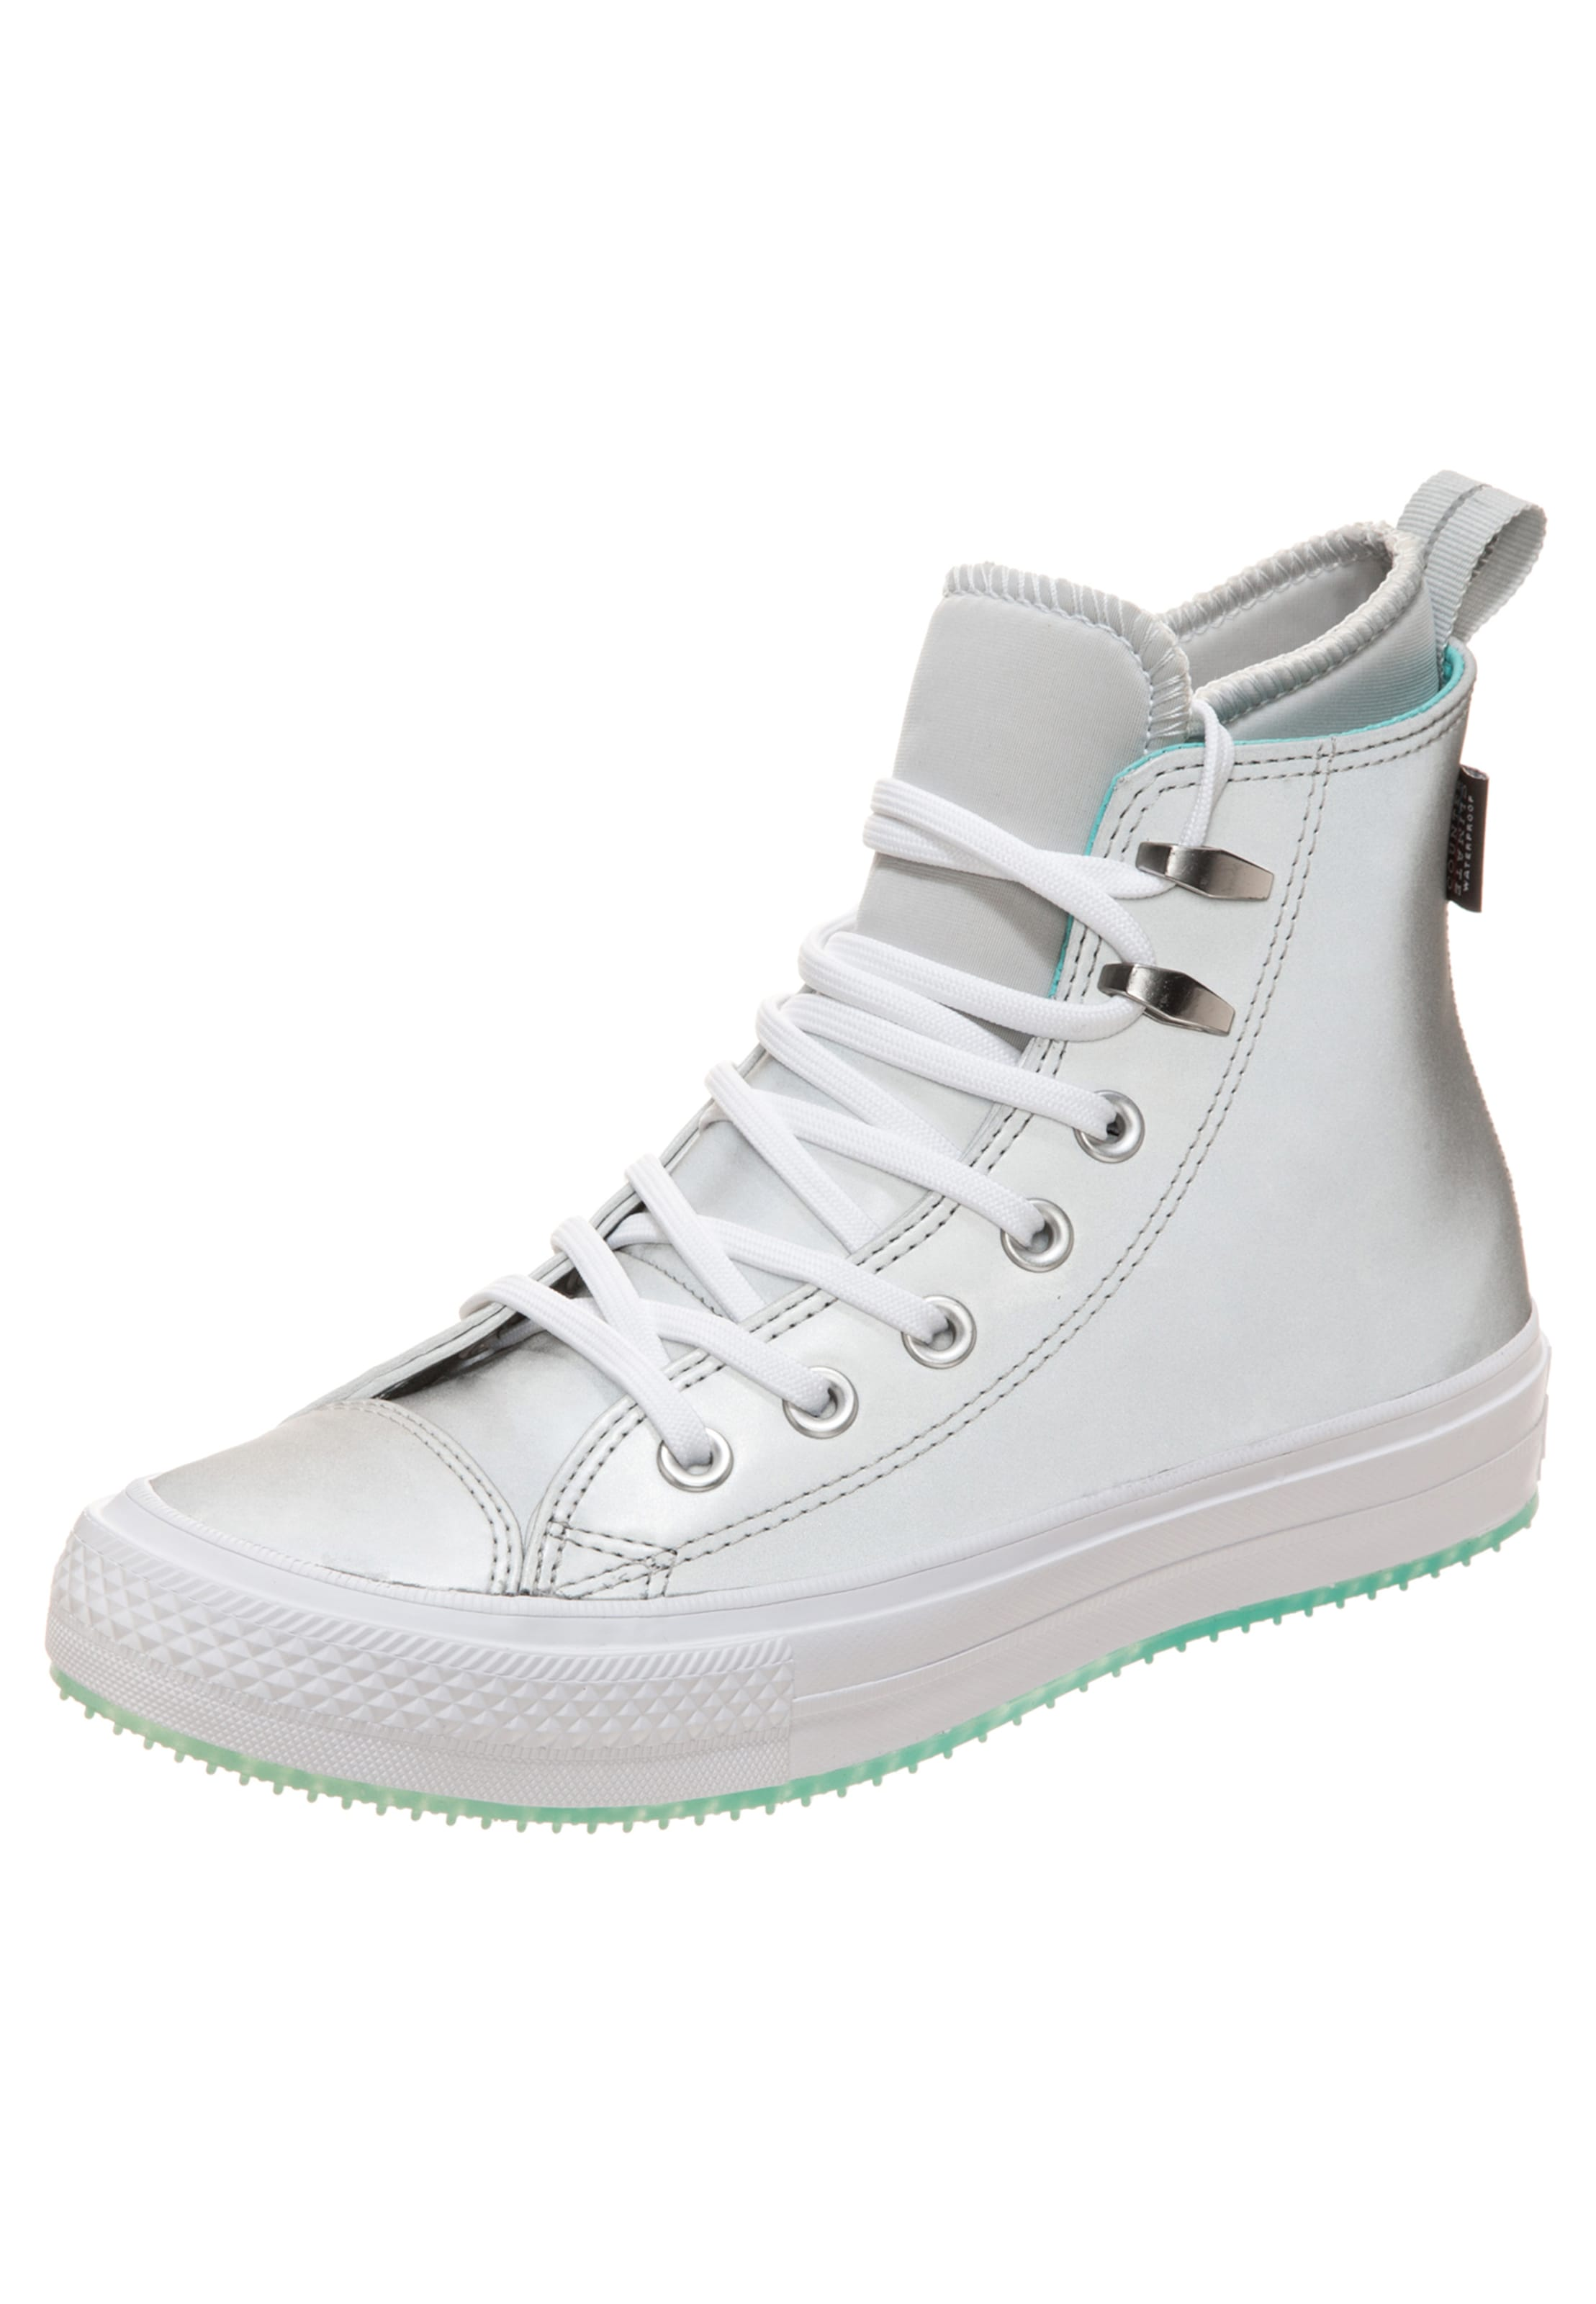 CONVERSE Chuck Taylor All Star Waterproof High Sneaker Damen